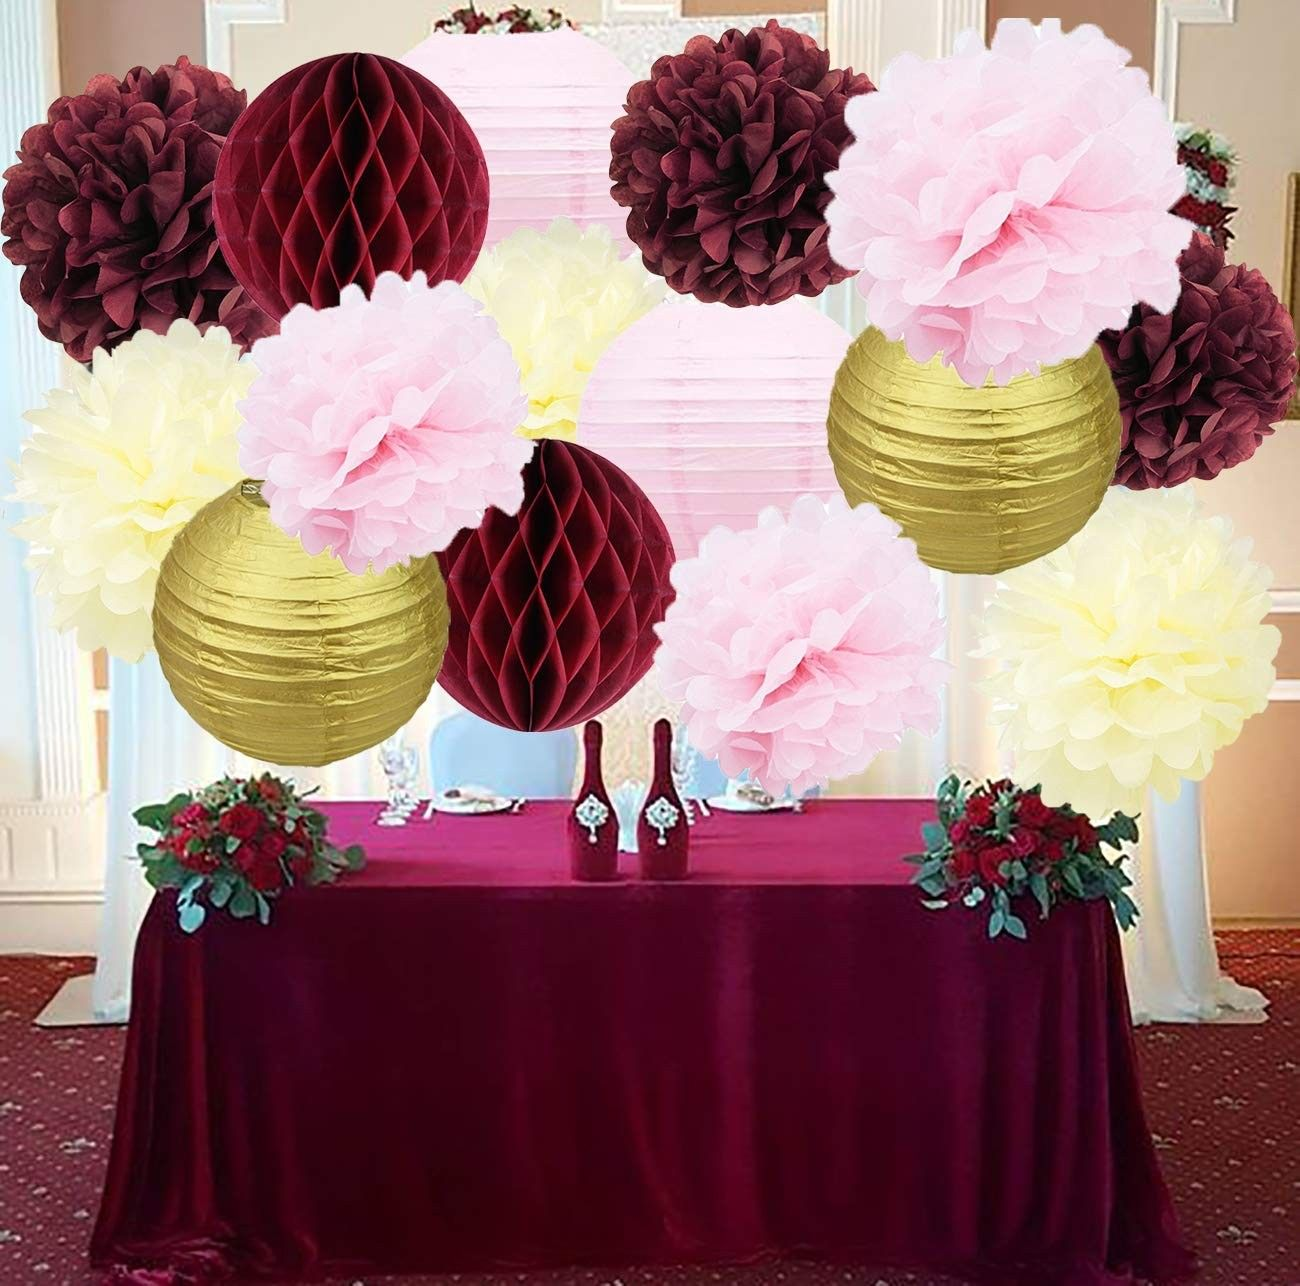 Bridal Shower Decorations Burgundy Pink Cream Glitter Gold Tissue Pom Pom Flower Paper Lanterns Honeycomb Balls Wedding Engagement Party Supplies C3188ihaah4 Engagement Party Wedding Bridal Shower Decorations Bridal Shower